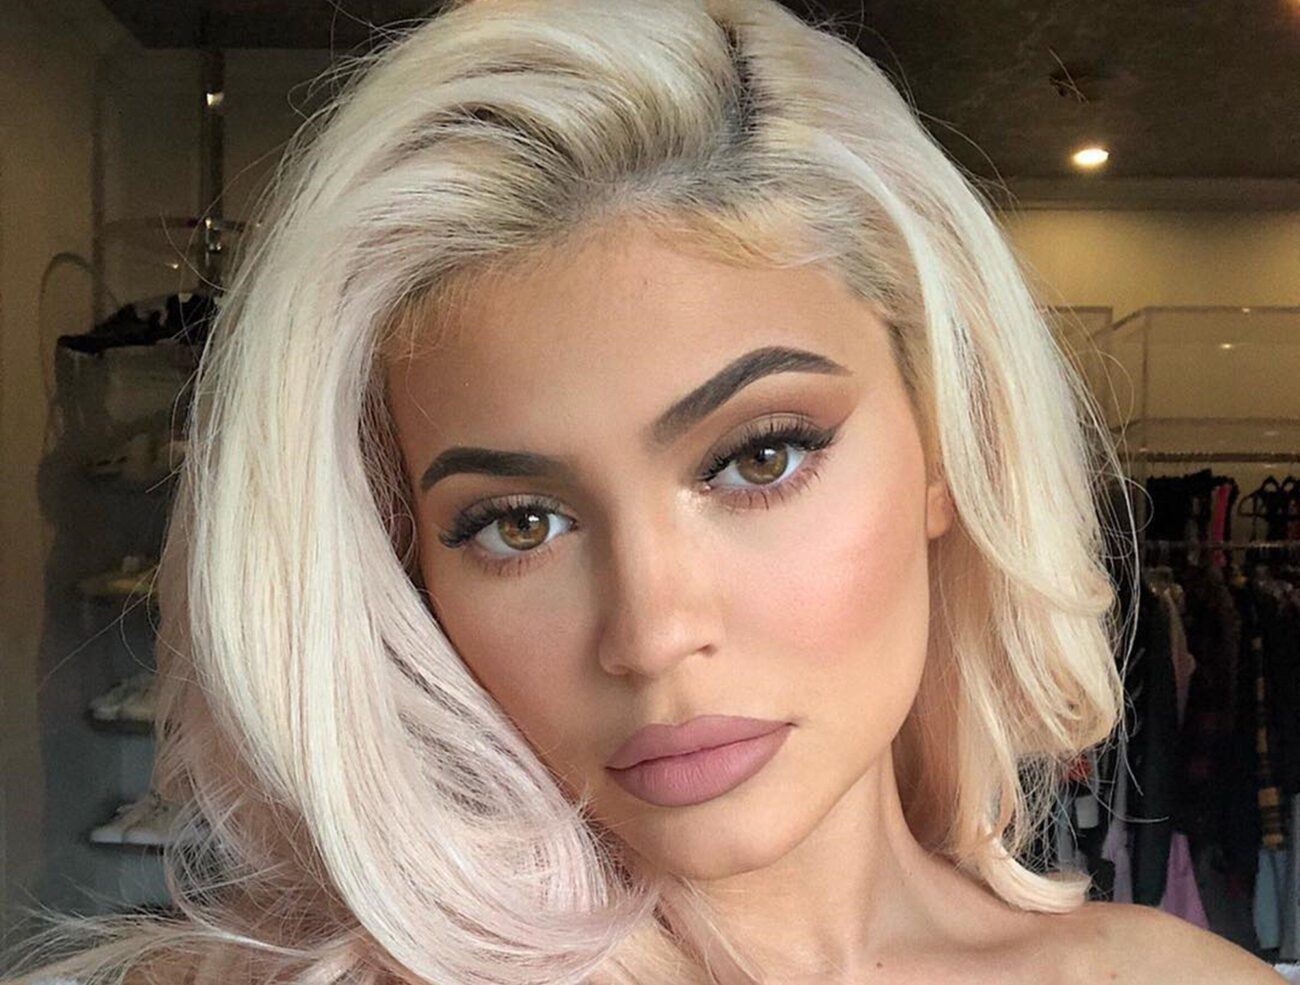 Could Kylie Jenner be pregnant once again? Here's what we know about Kylie Jenner's new kid and the father of her baby.